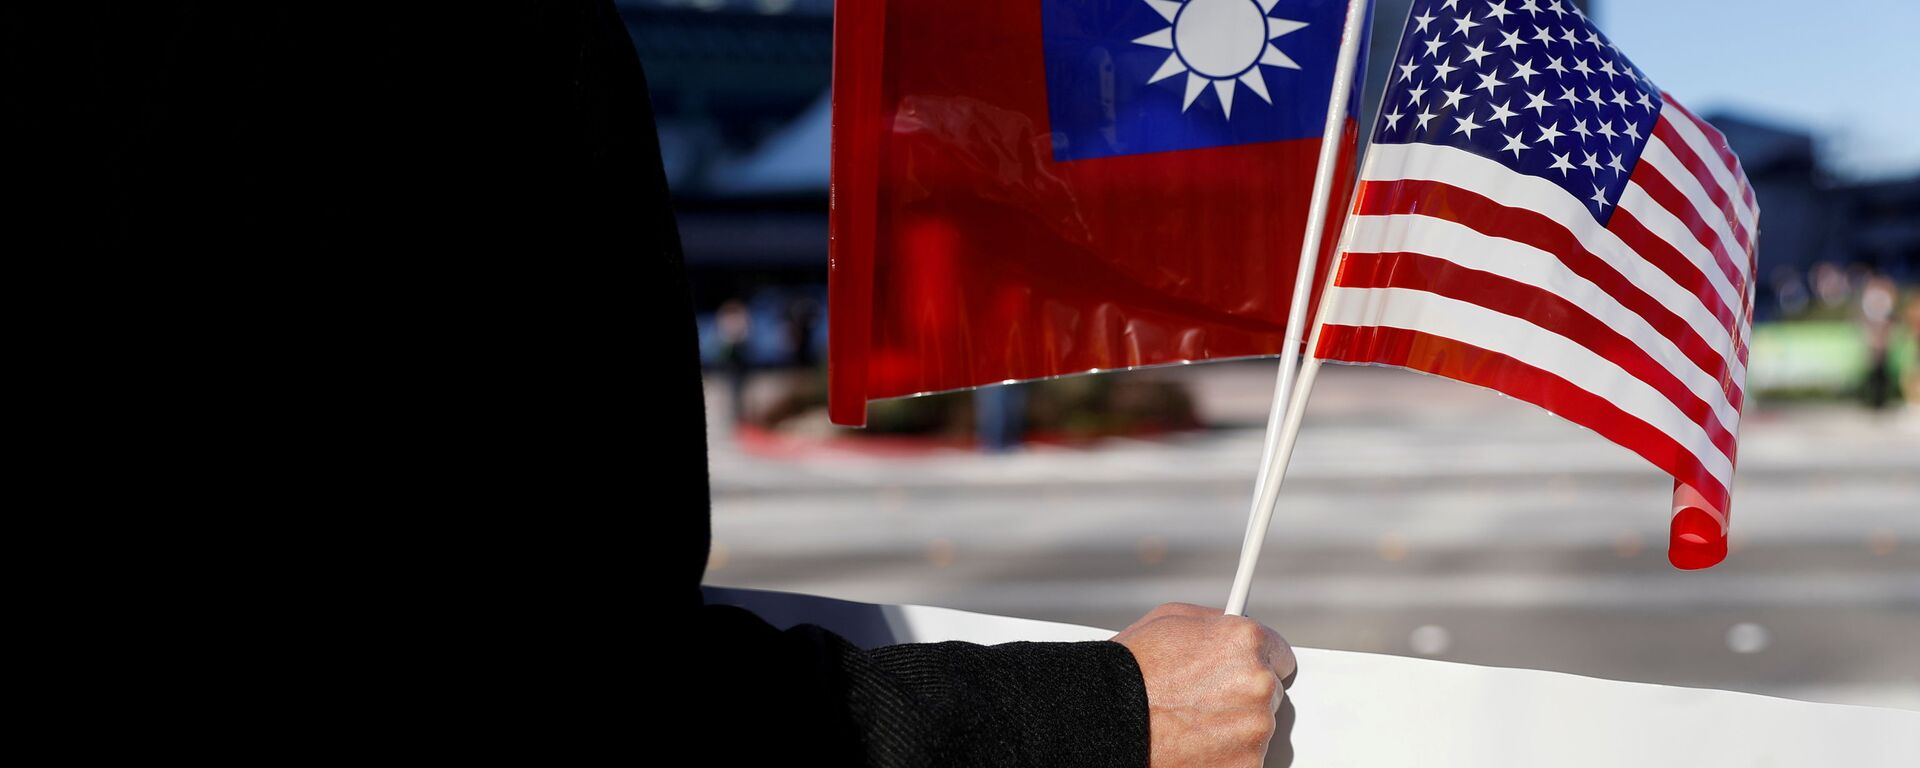 A demonstrator holds flags of Taiwan and the United States in support of Taiwanese President Tsai Ing-wen during an stop-over after her visit to Latin America in Burlingame, California, 14 January 2017. REUTERS/Stephen Lam/File Photo - Sputnik International, 1920, 24.07.2021